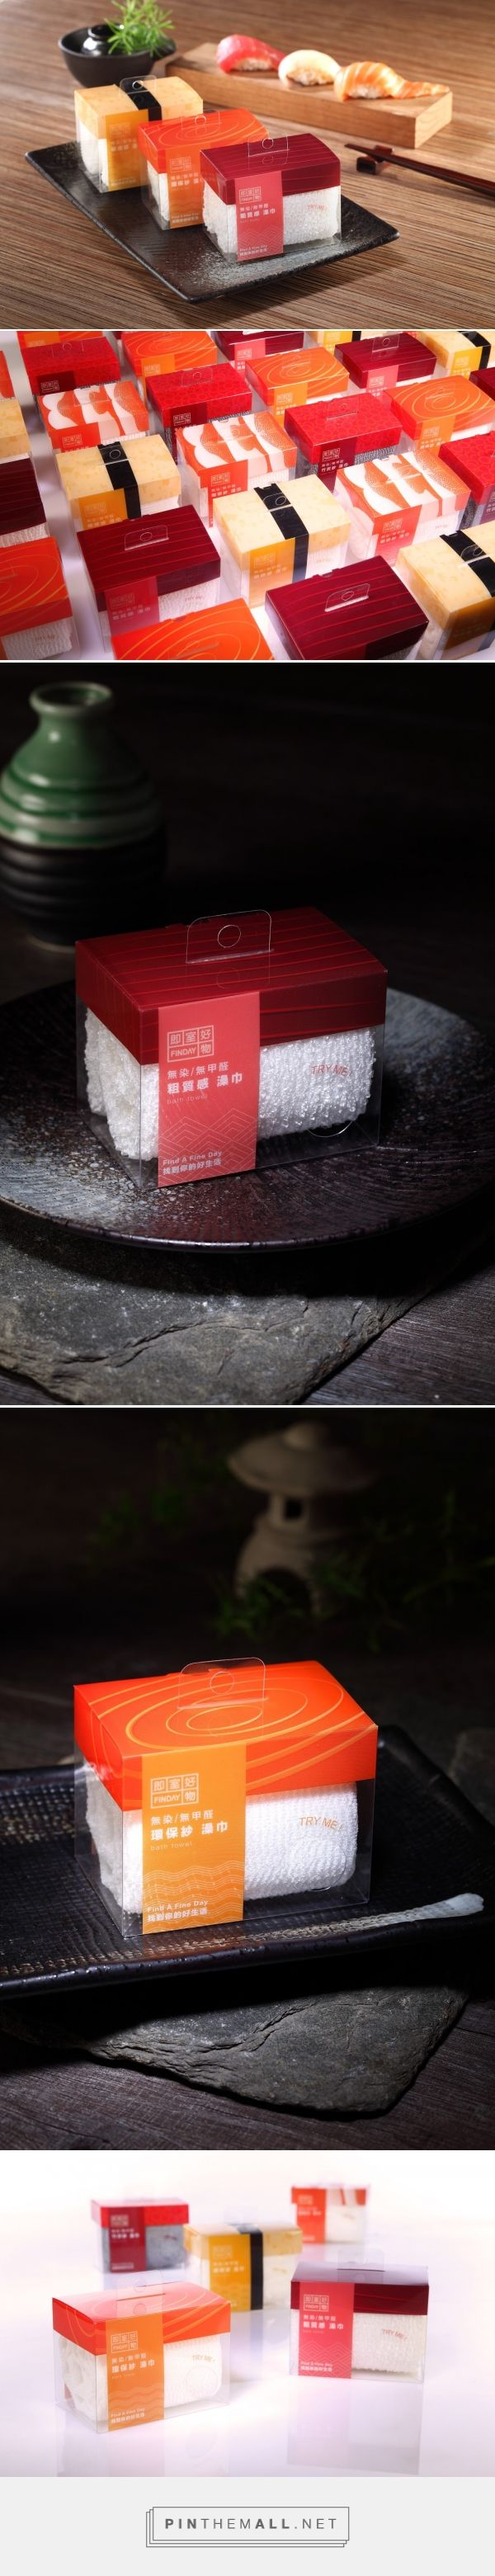 Sushi or Towel? Packaging design by Goodeed Design (Taiwan) - http://www.packagingoftheworld.com/2016/07/sushi-loofah-towel.html